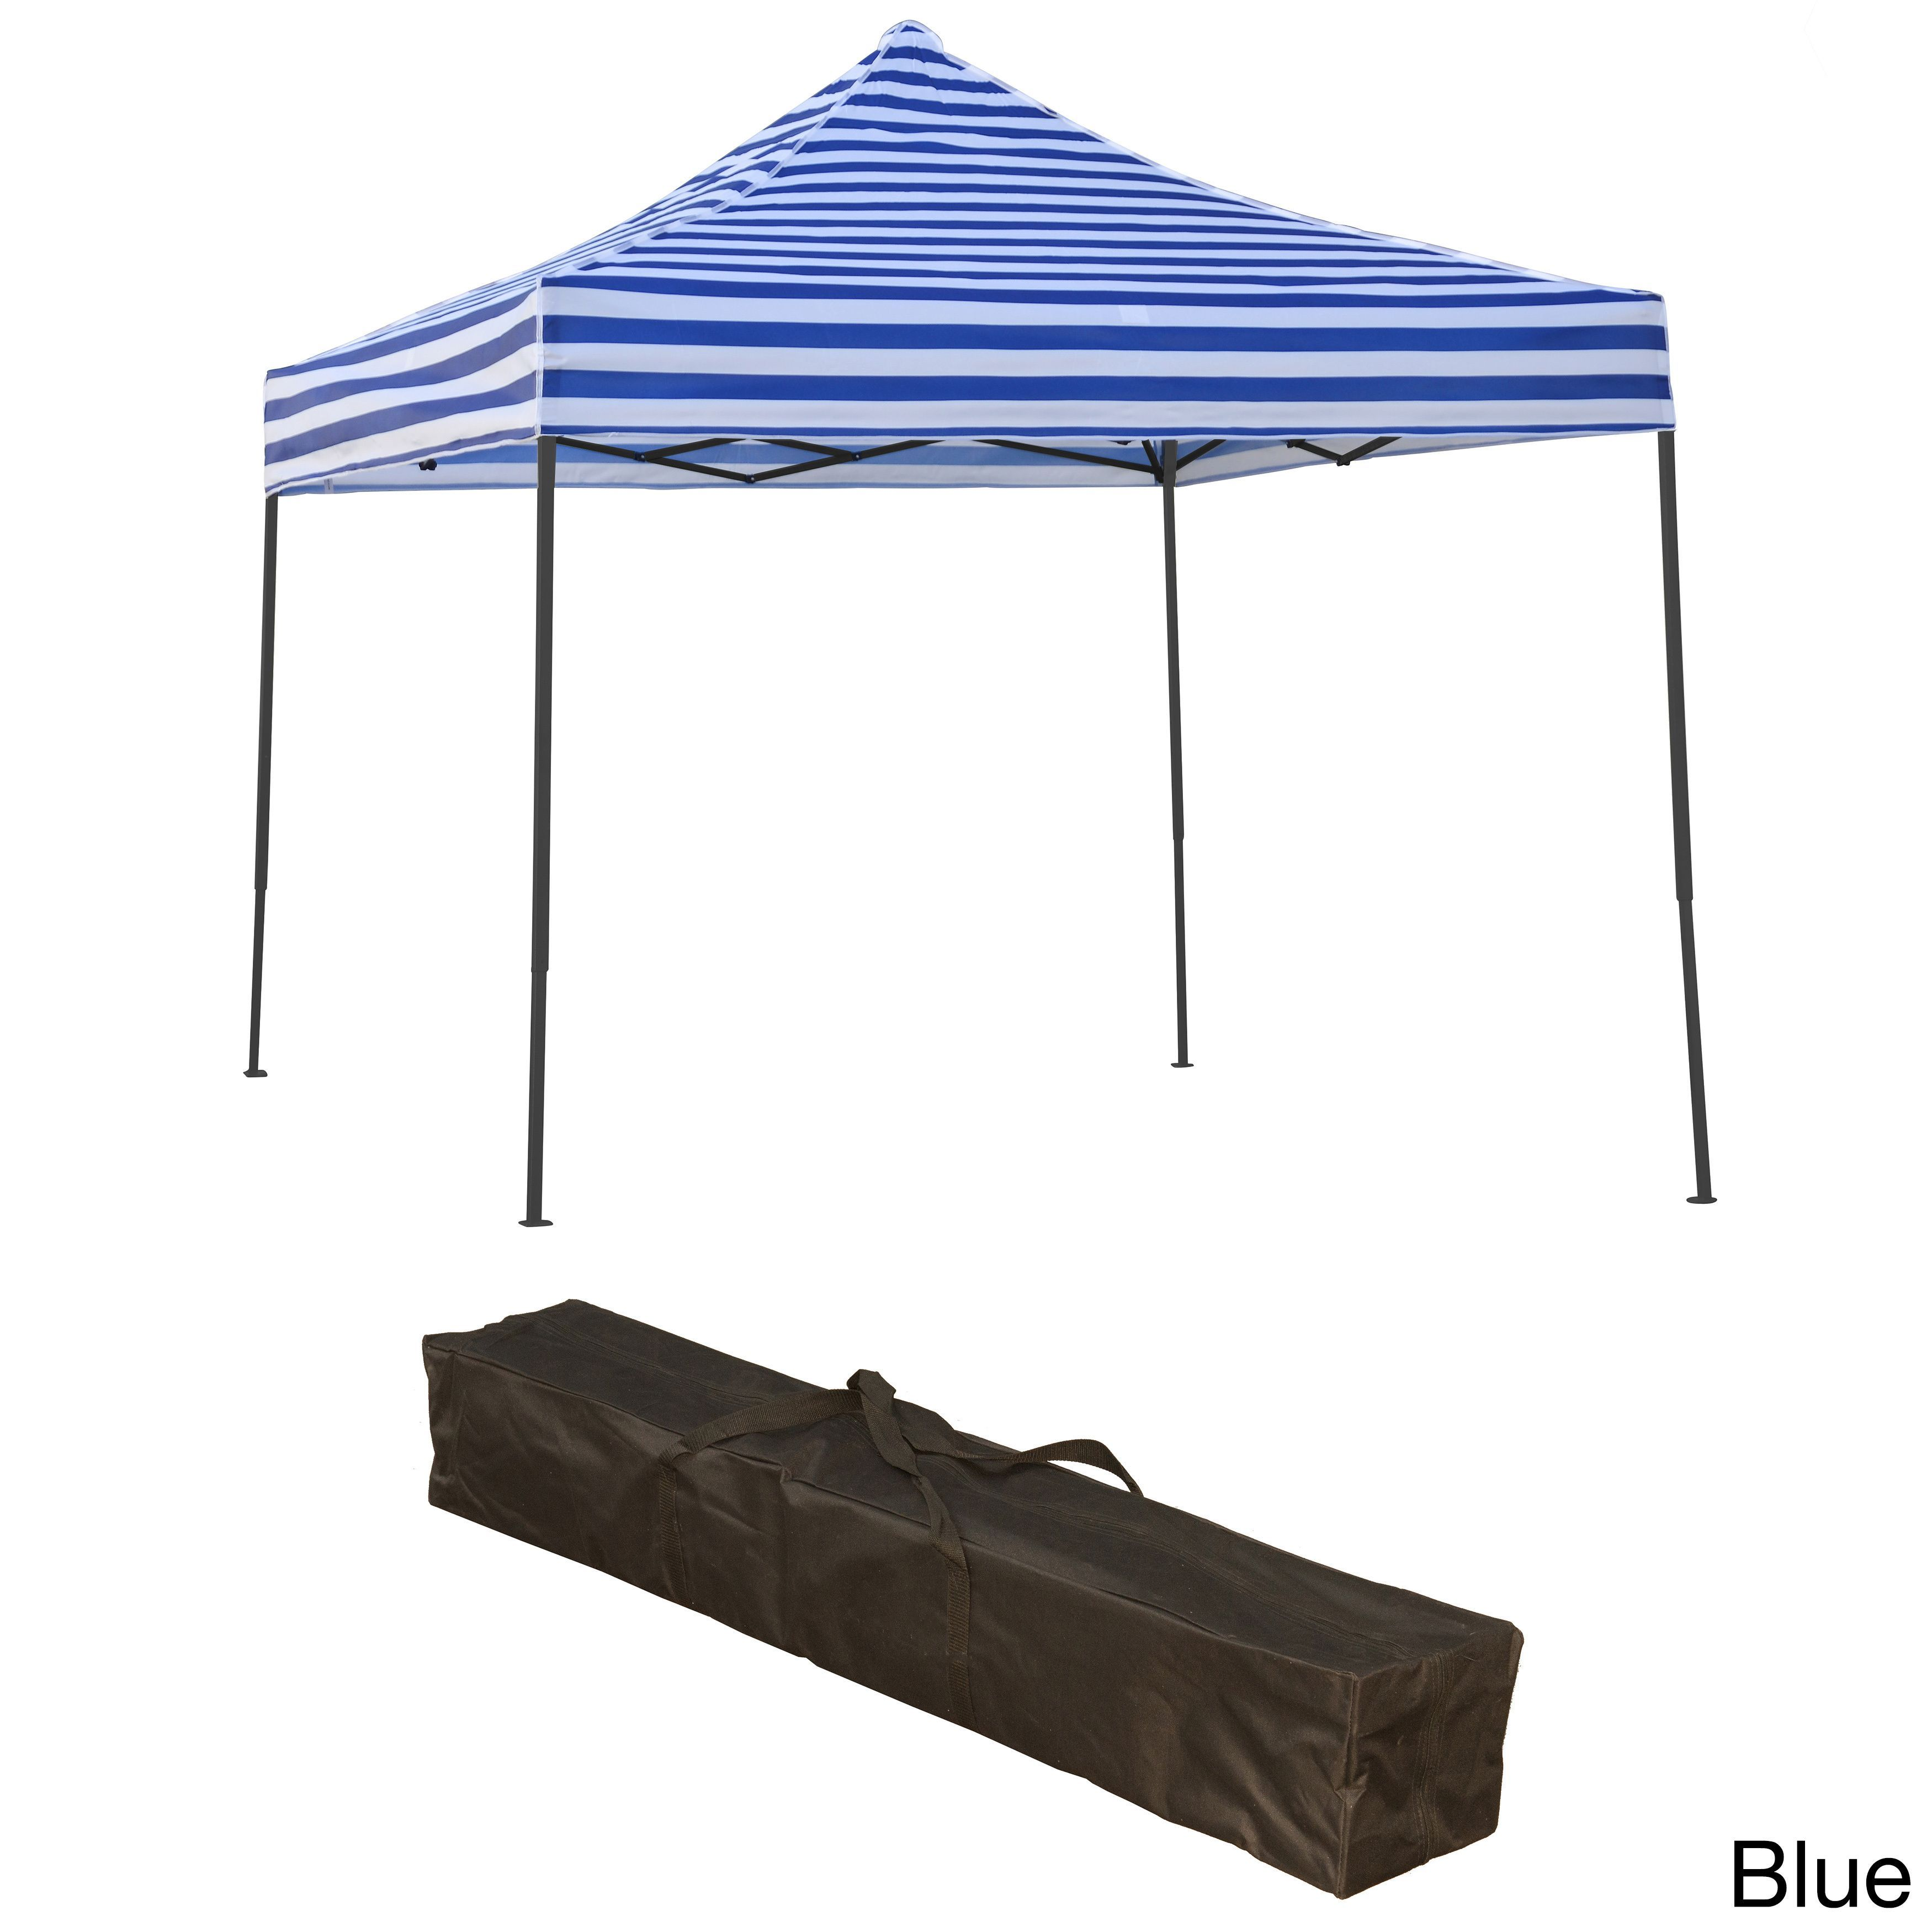 Online Shopping Bedding Furniture Electronics Jewelry Clothing More 10x10 Canopy Tent Canopy Tent Portable Canopy